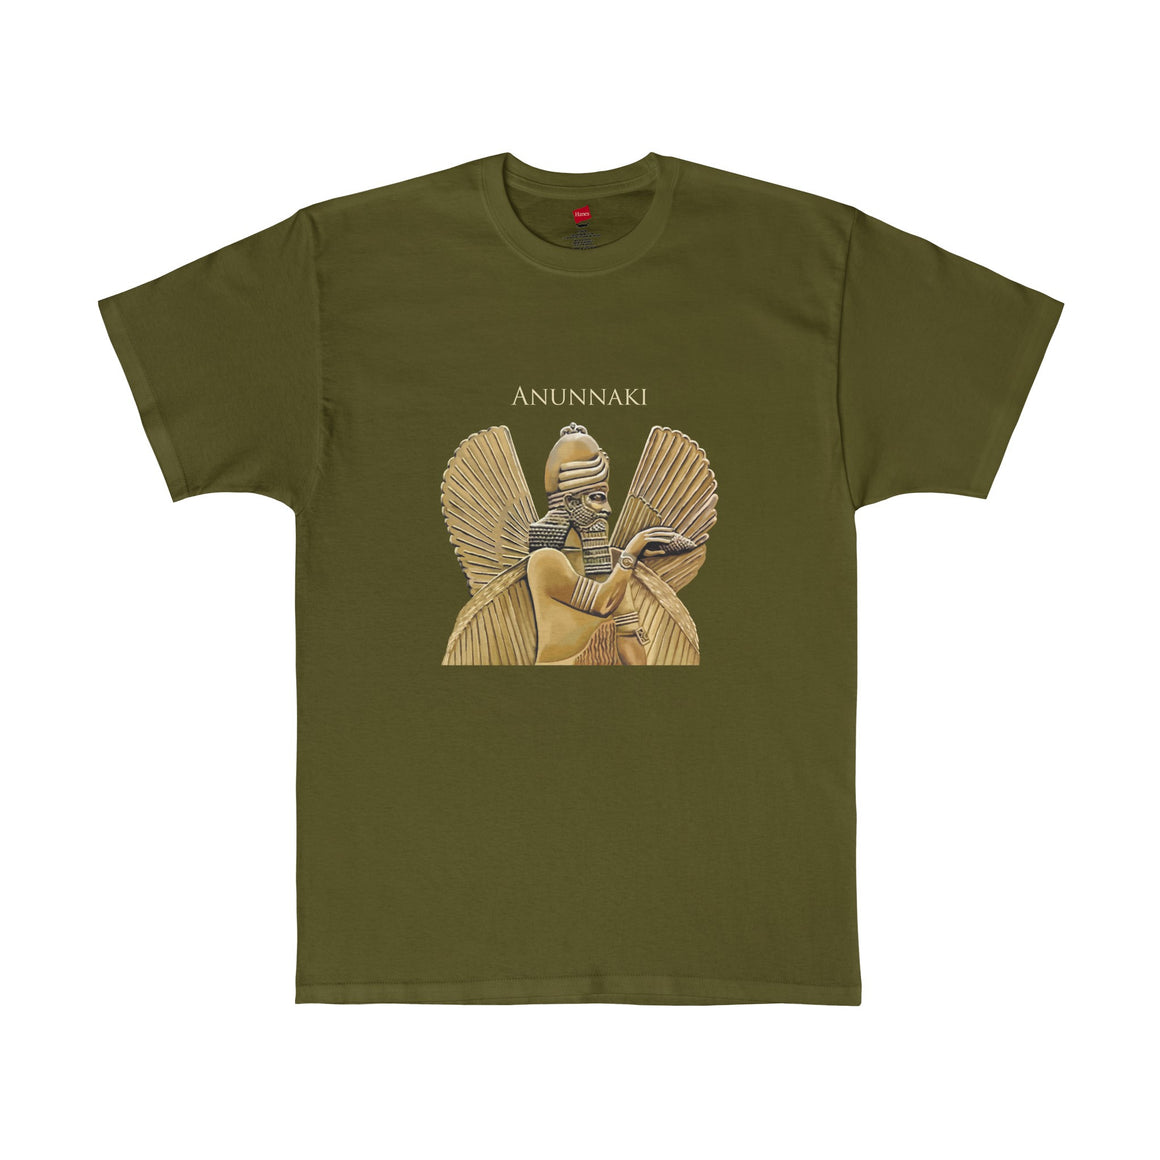 Anunnaki Tagless Men's T-Shirt